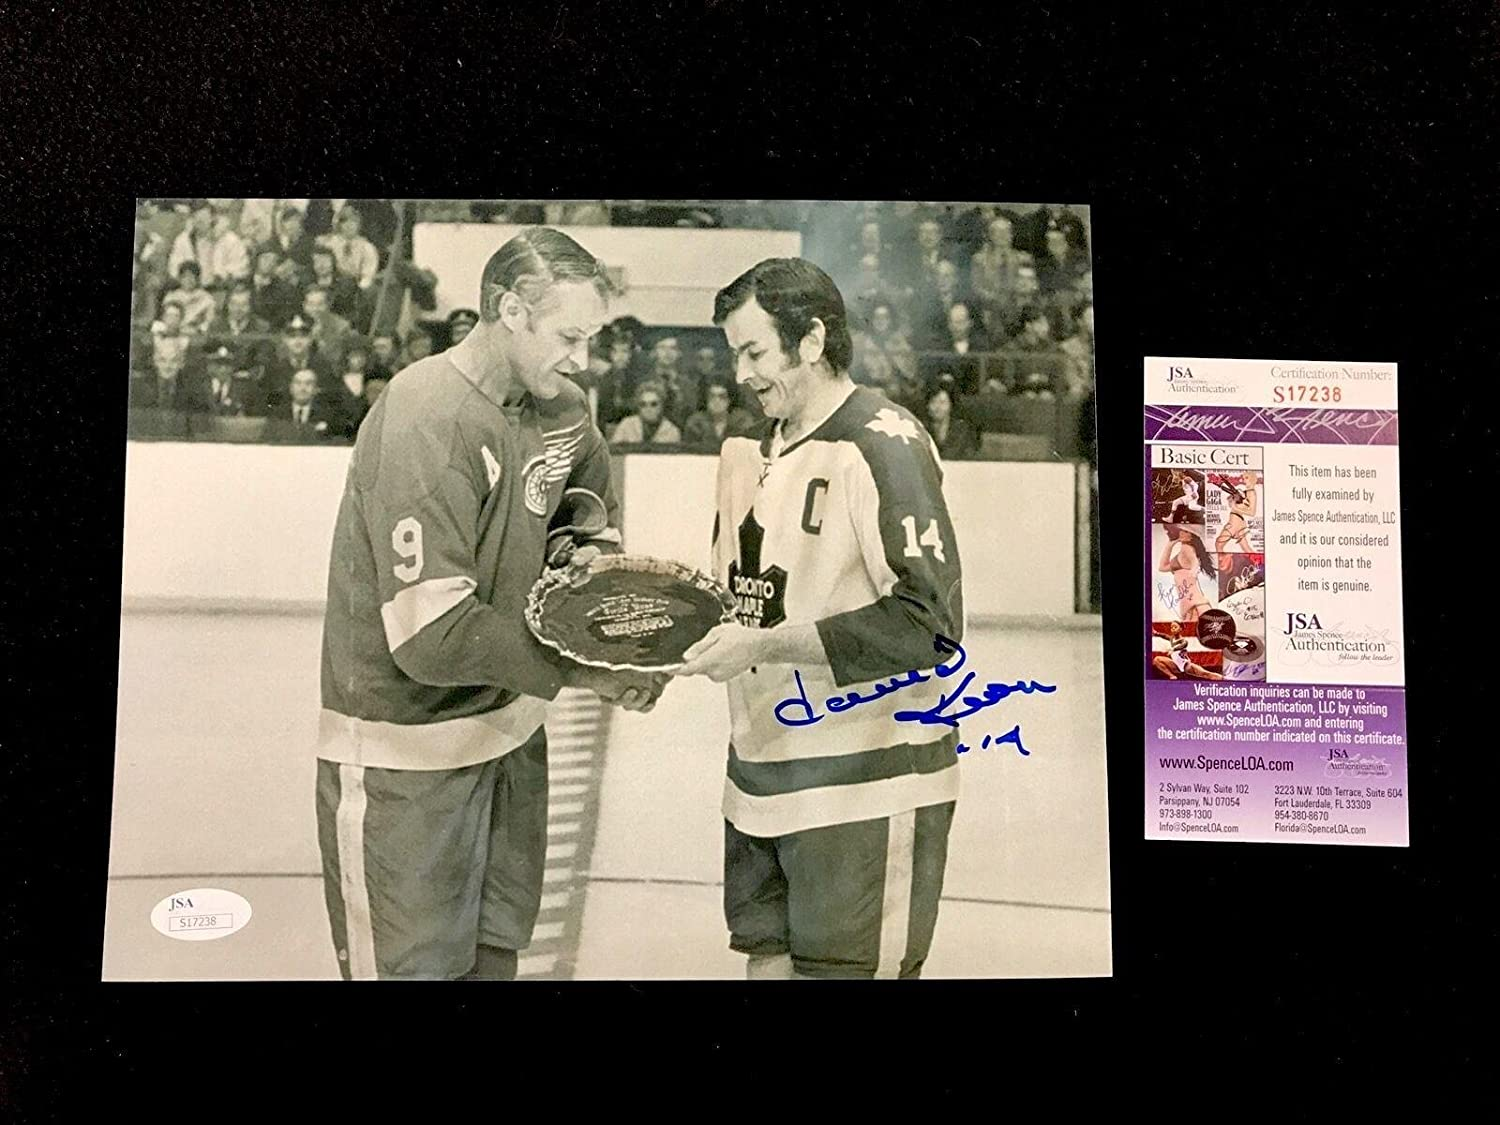 Signed Keon Photograph  8x10 Authenticated S17238  JSA Certified  Autographed NHL Photos